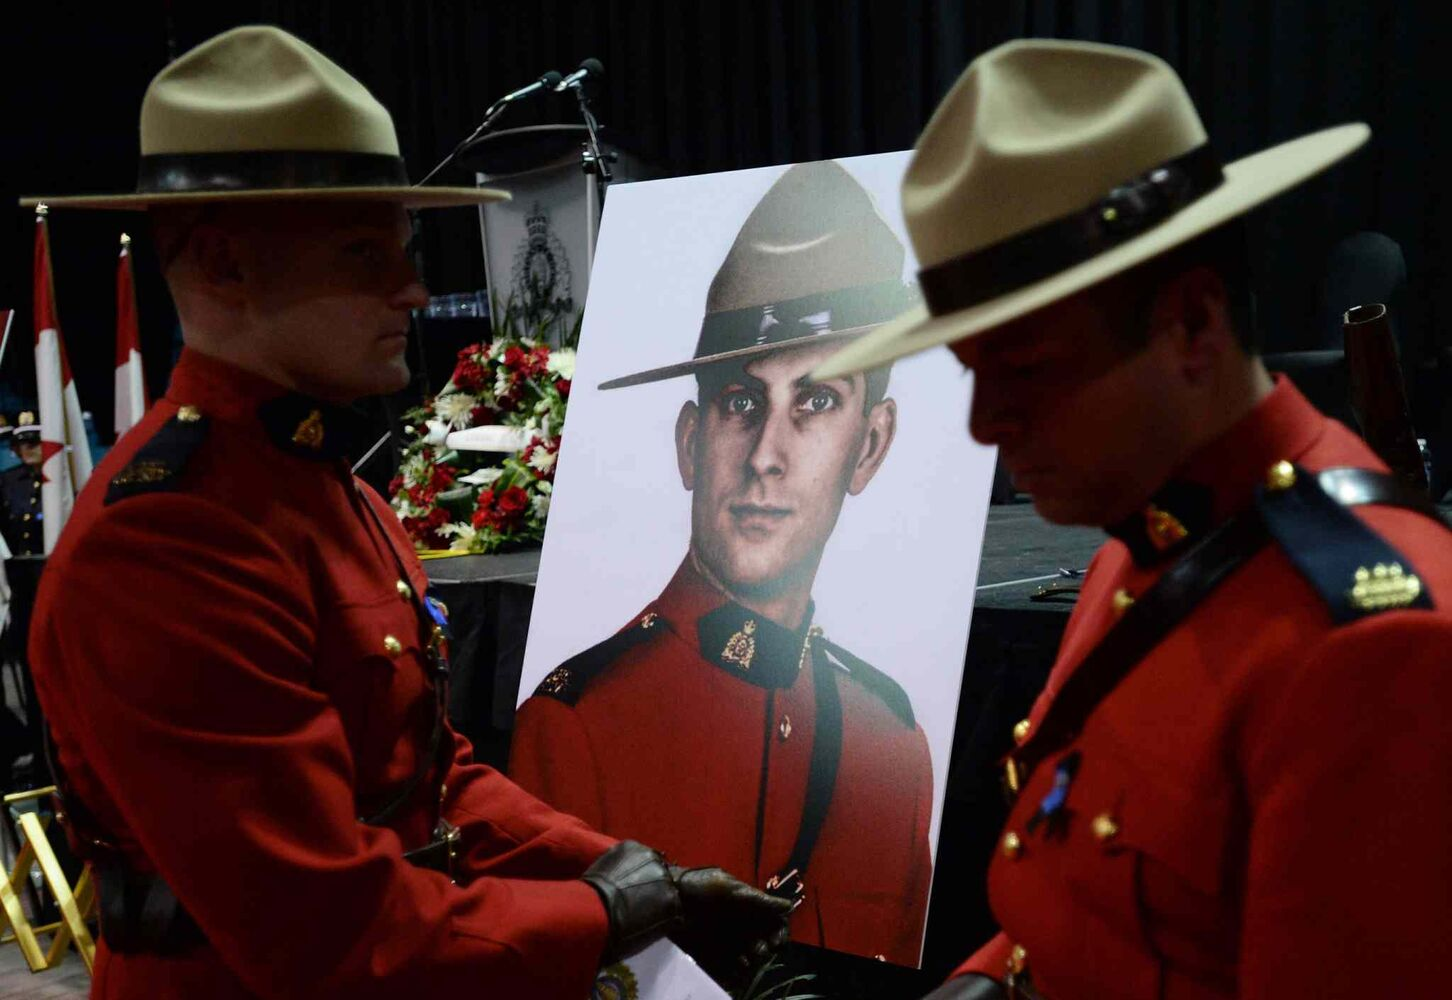 RCMP Officers flank a portrait of slain RCMP officer Const. Douglas Larche during the regimental funeral in Moncton Tuesday.